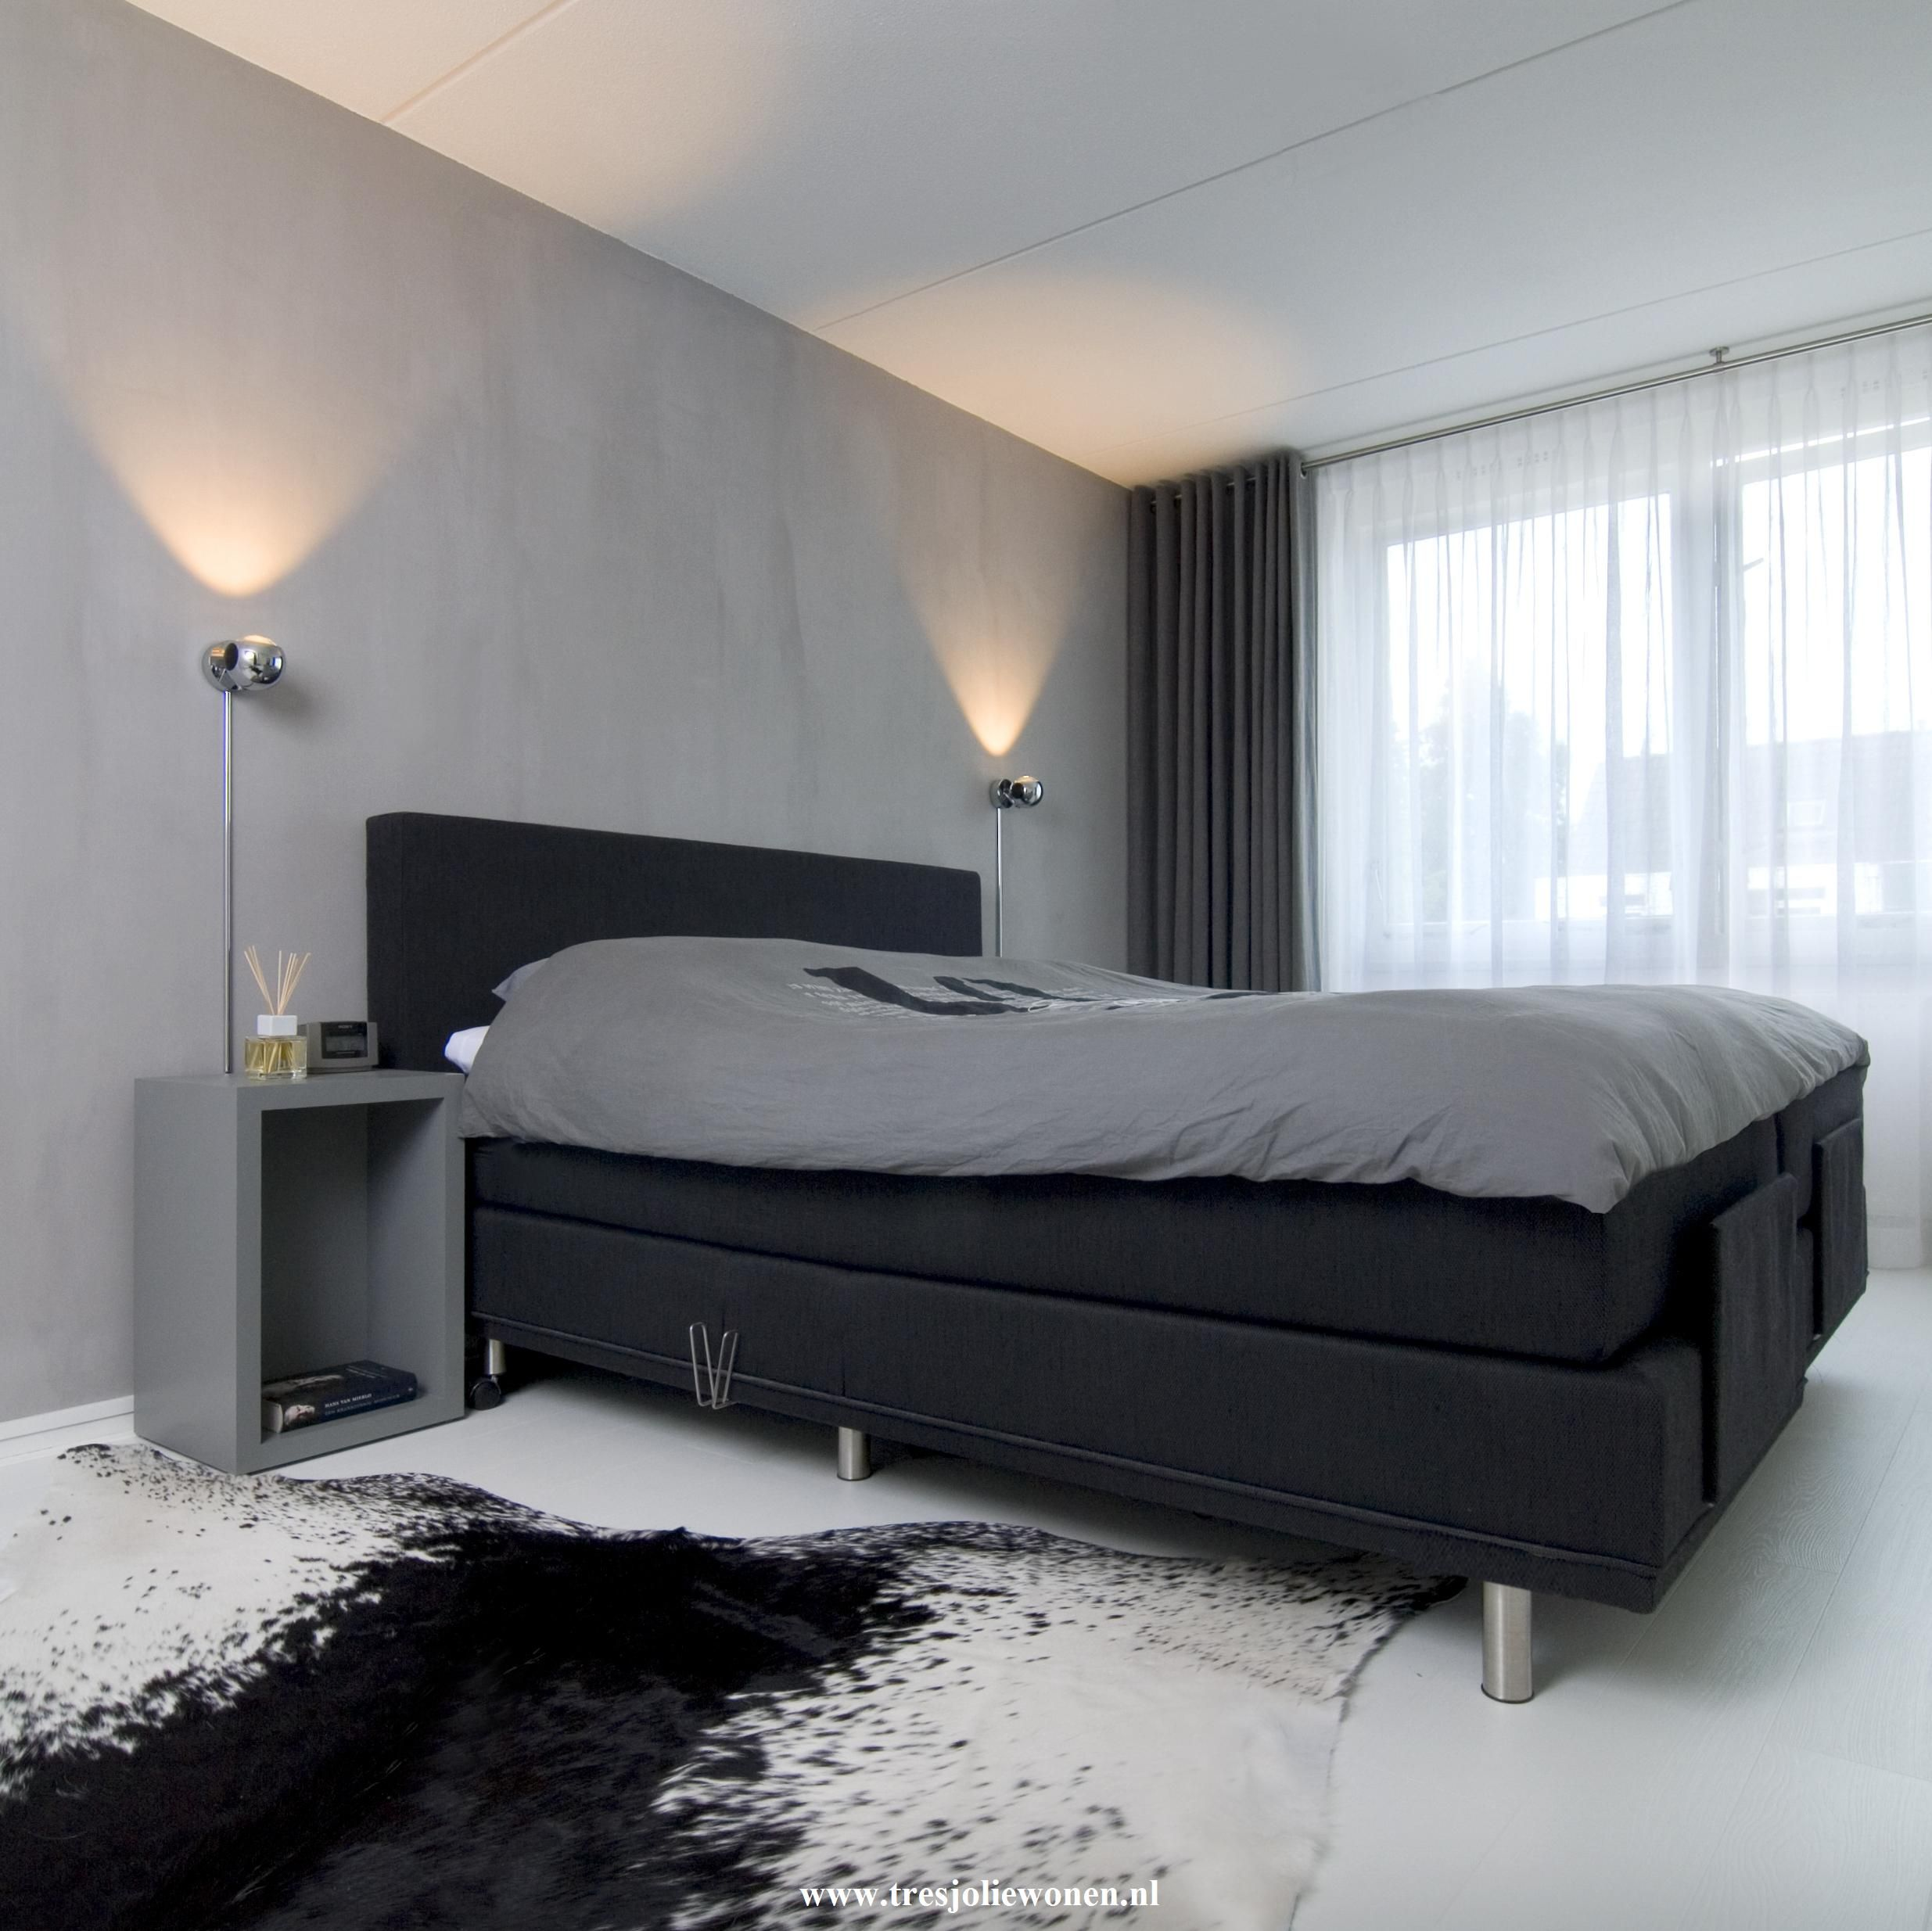 ... Slaapkamer, Slaapkamer Ideeen Modern, Bedroom Idea S, Bedroom Ideas